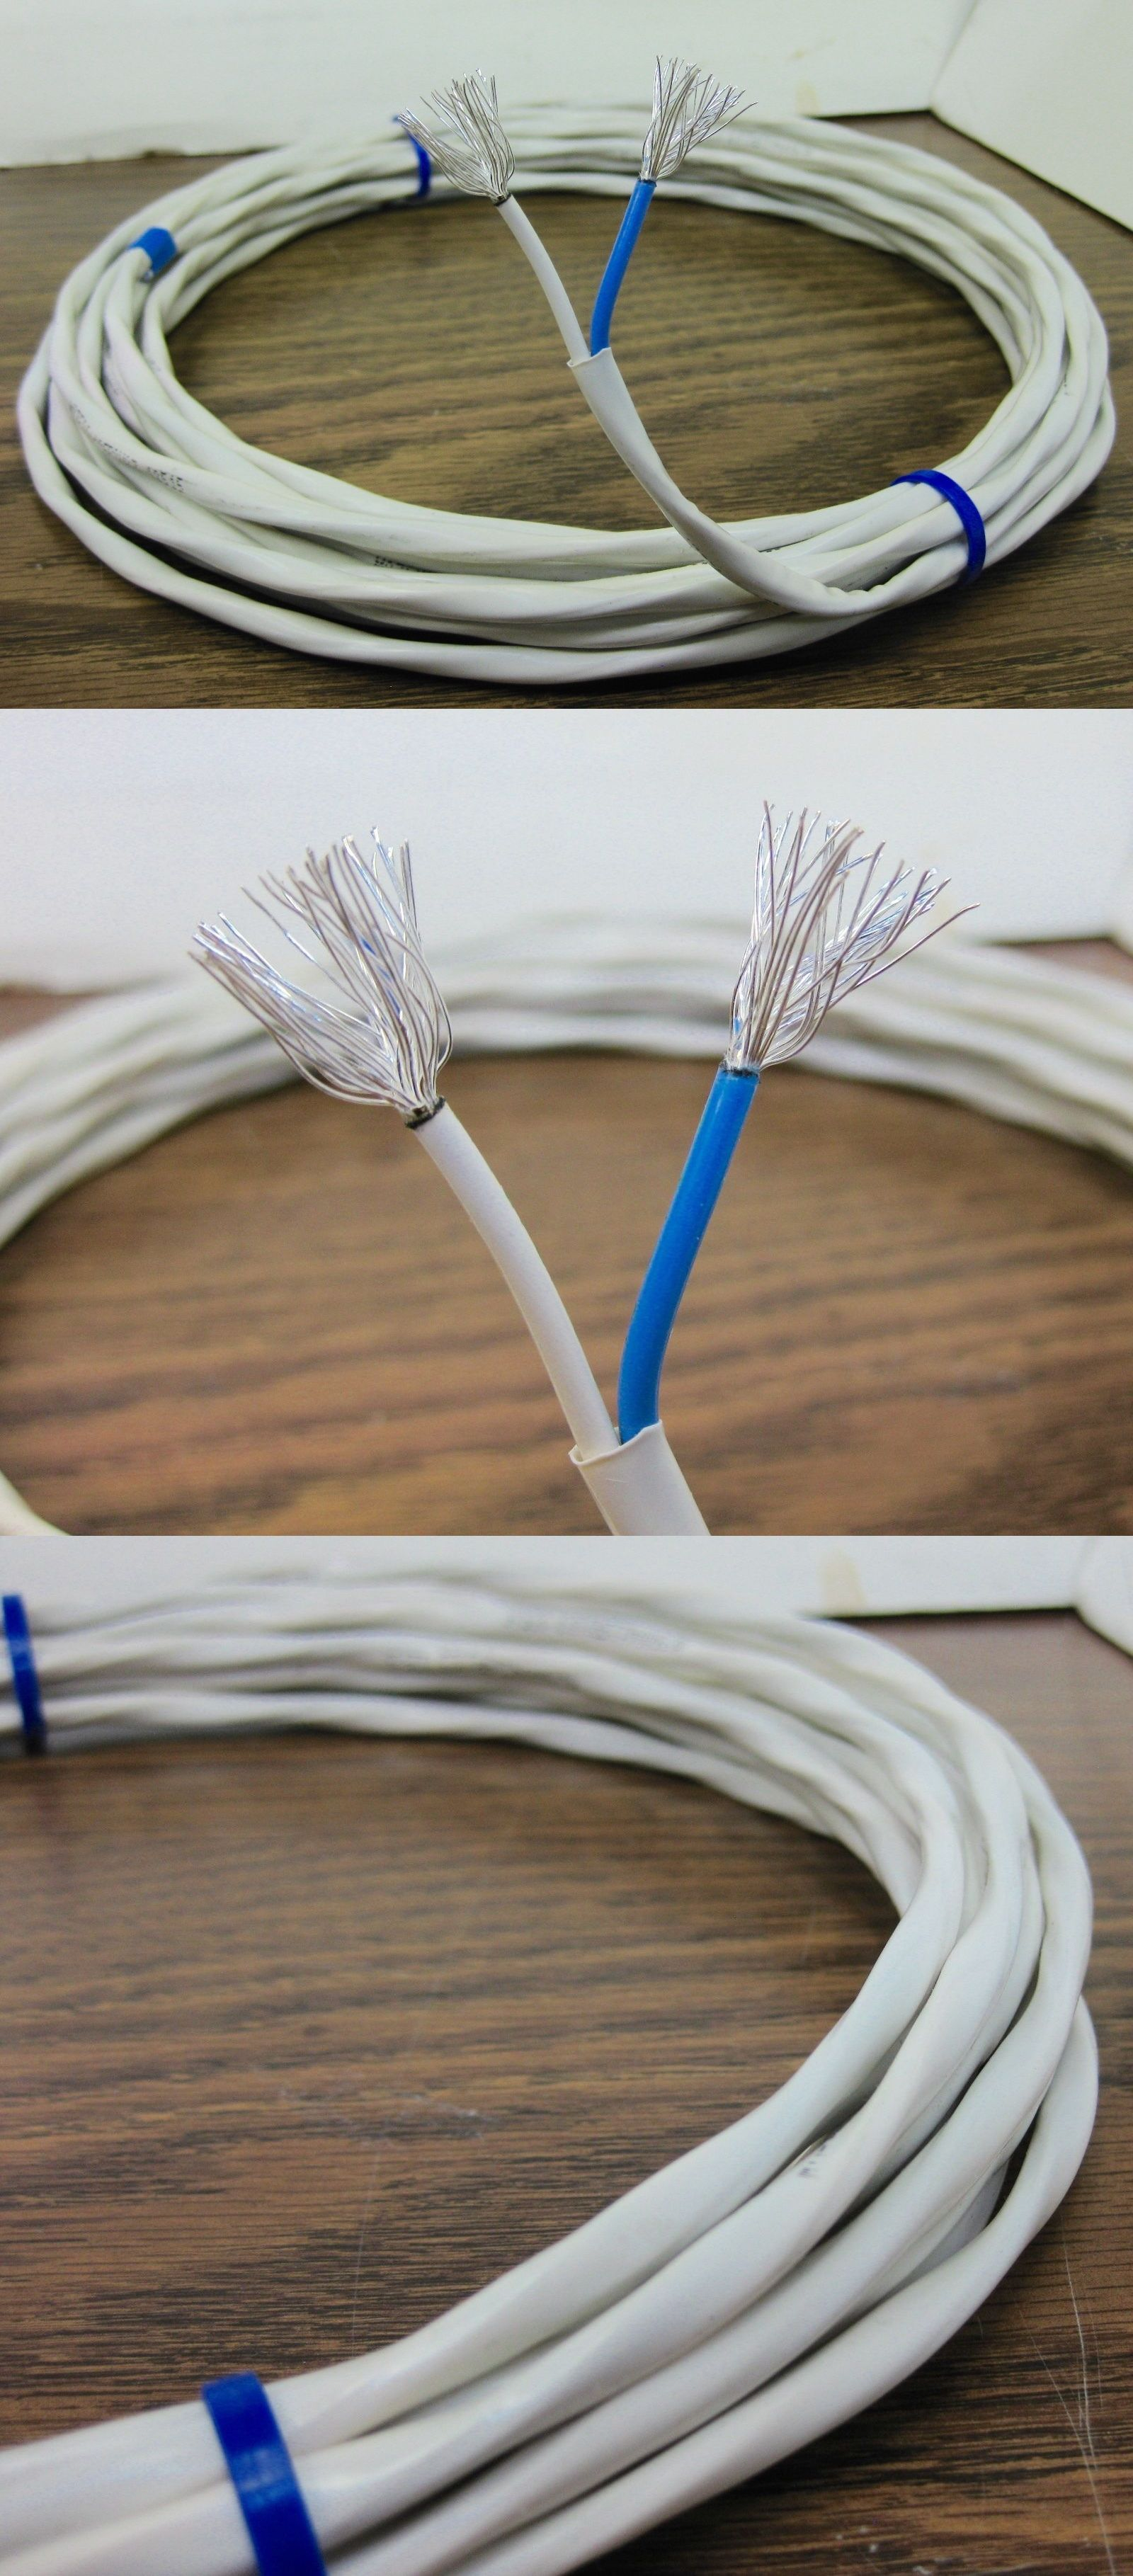 Audio Cables and Interconnects: 14 Feet 12 Awg Twisted Pair Silver Plated Cable Speaker Wire 37 Strands -> BUY IT NOW ONLY: $34.5 on eBay!